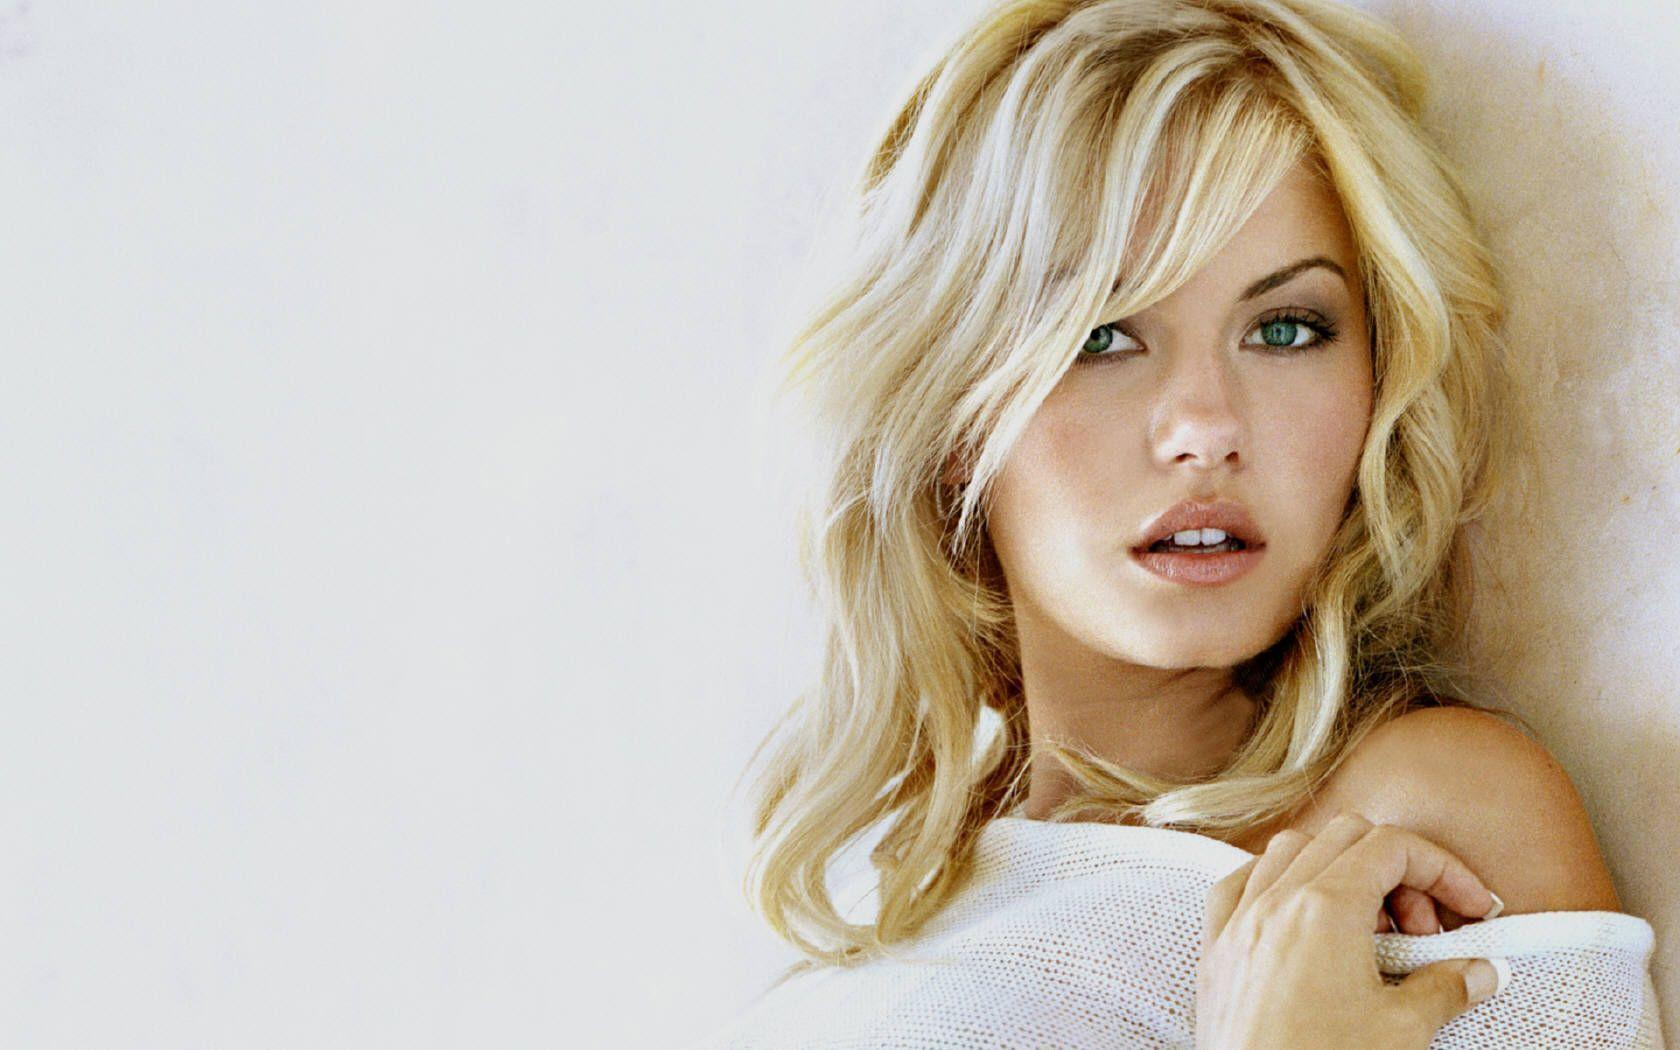 Elisha Cuthbert Hd Wallpapers: Wallpapers Of Elisha Cuthbert